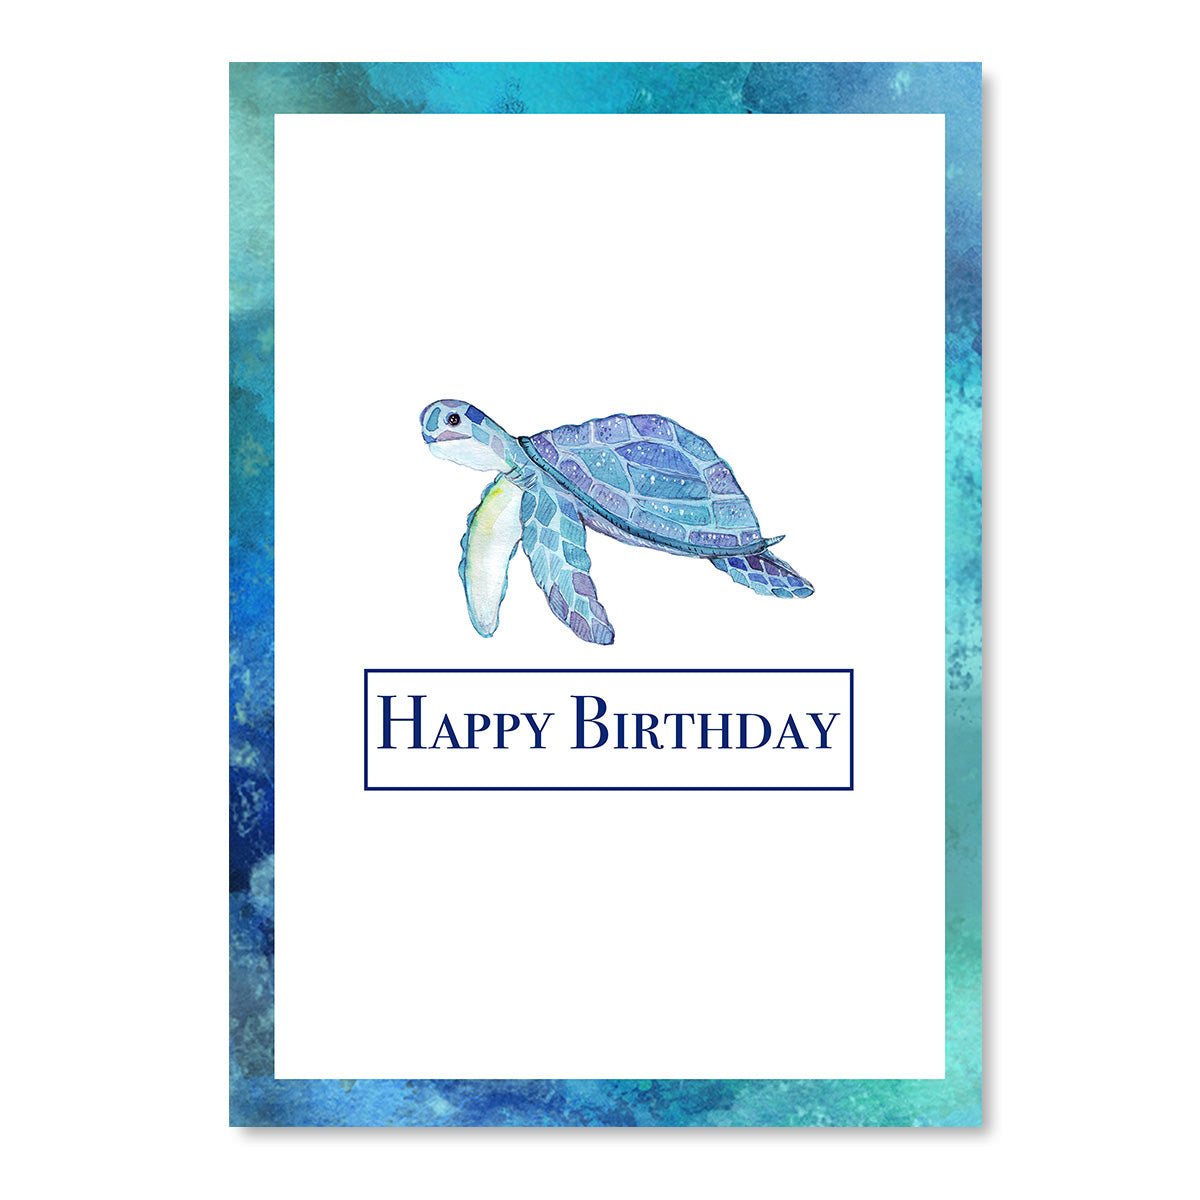 Happy Birthday Blue Turtle Card-Greeting Cards-Mode Prints